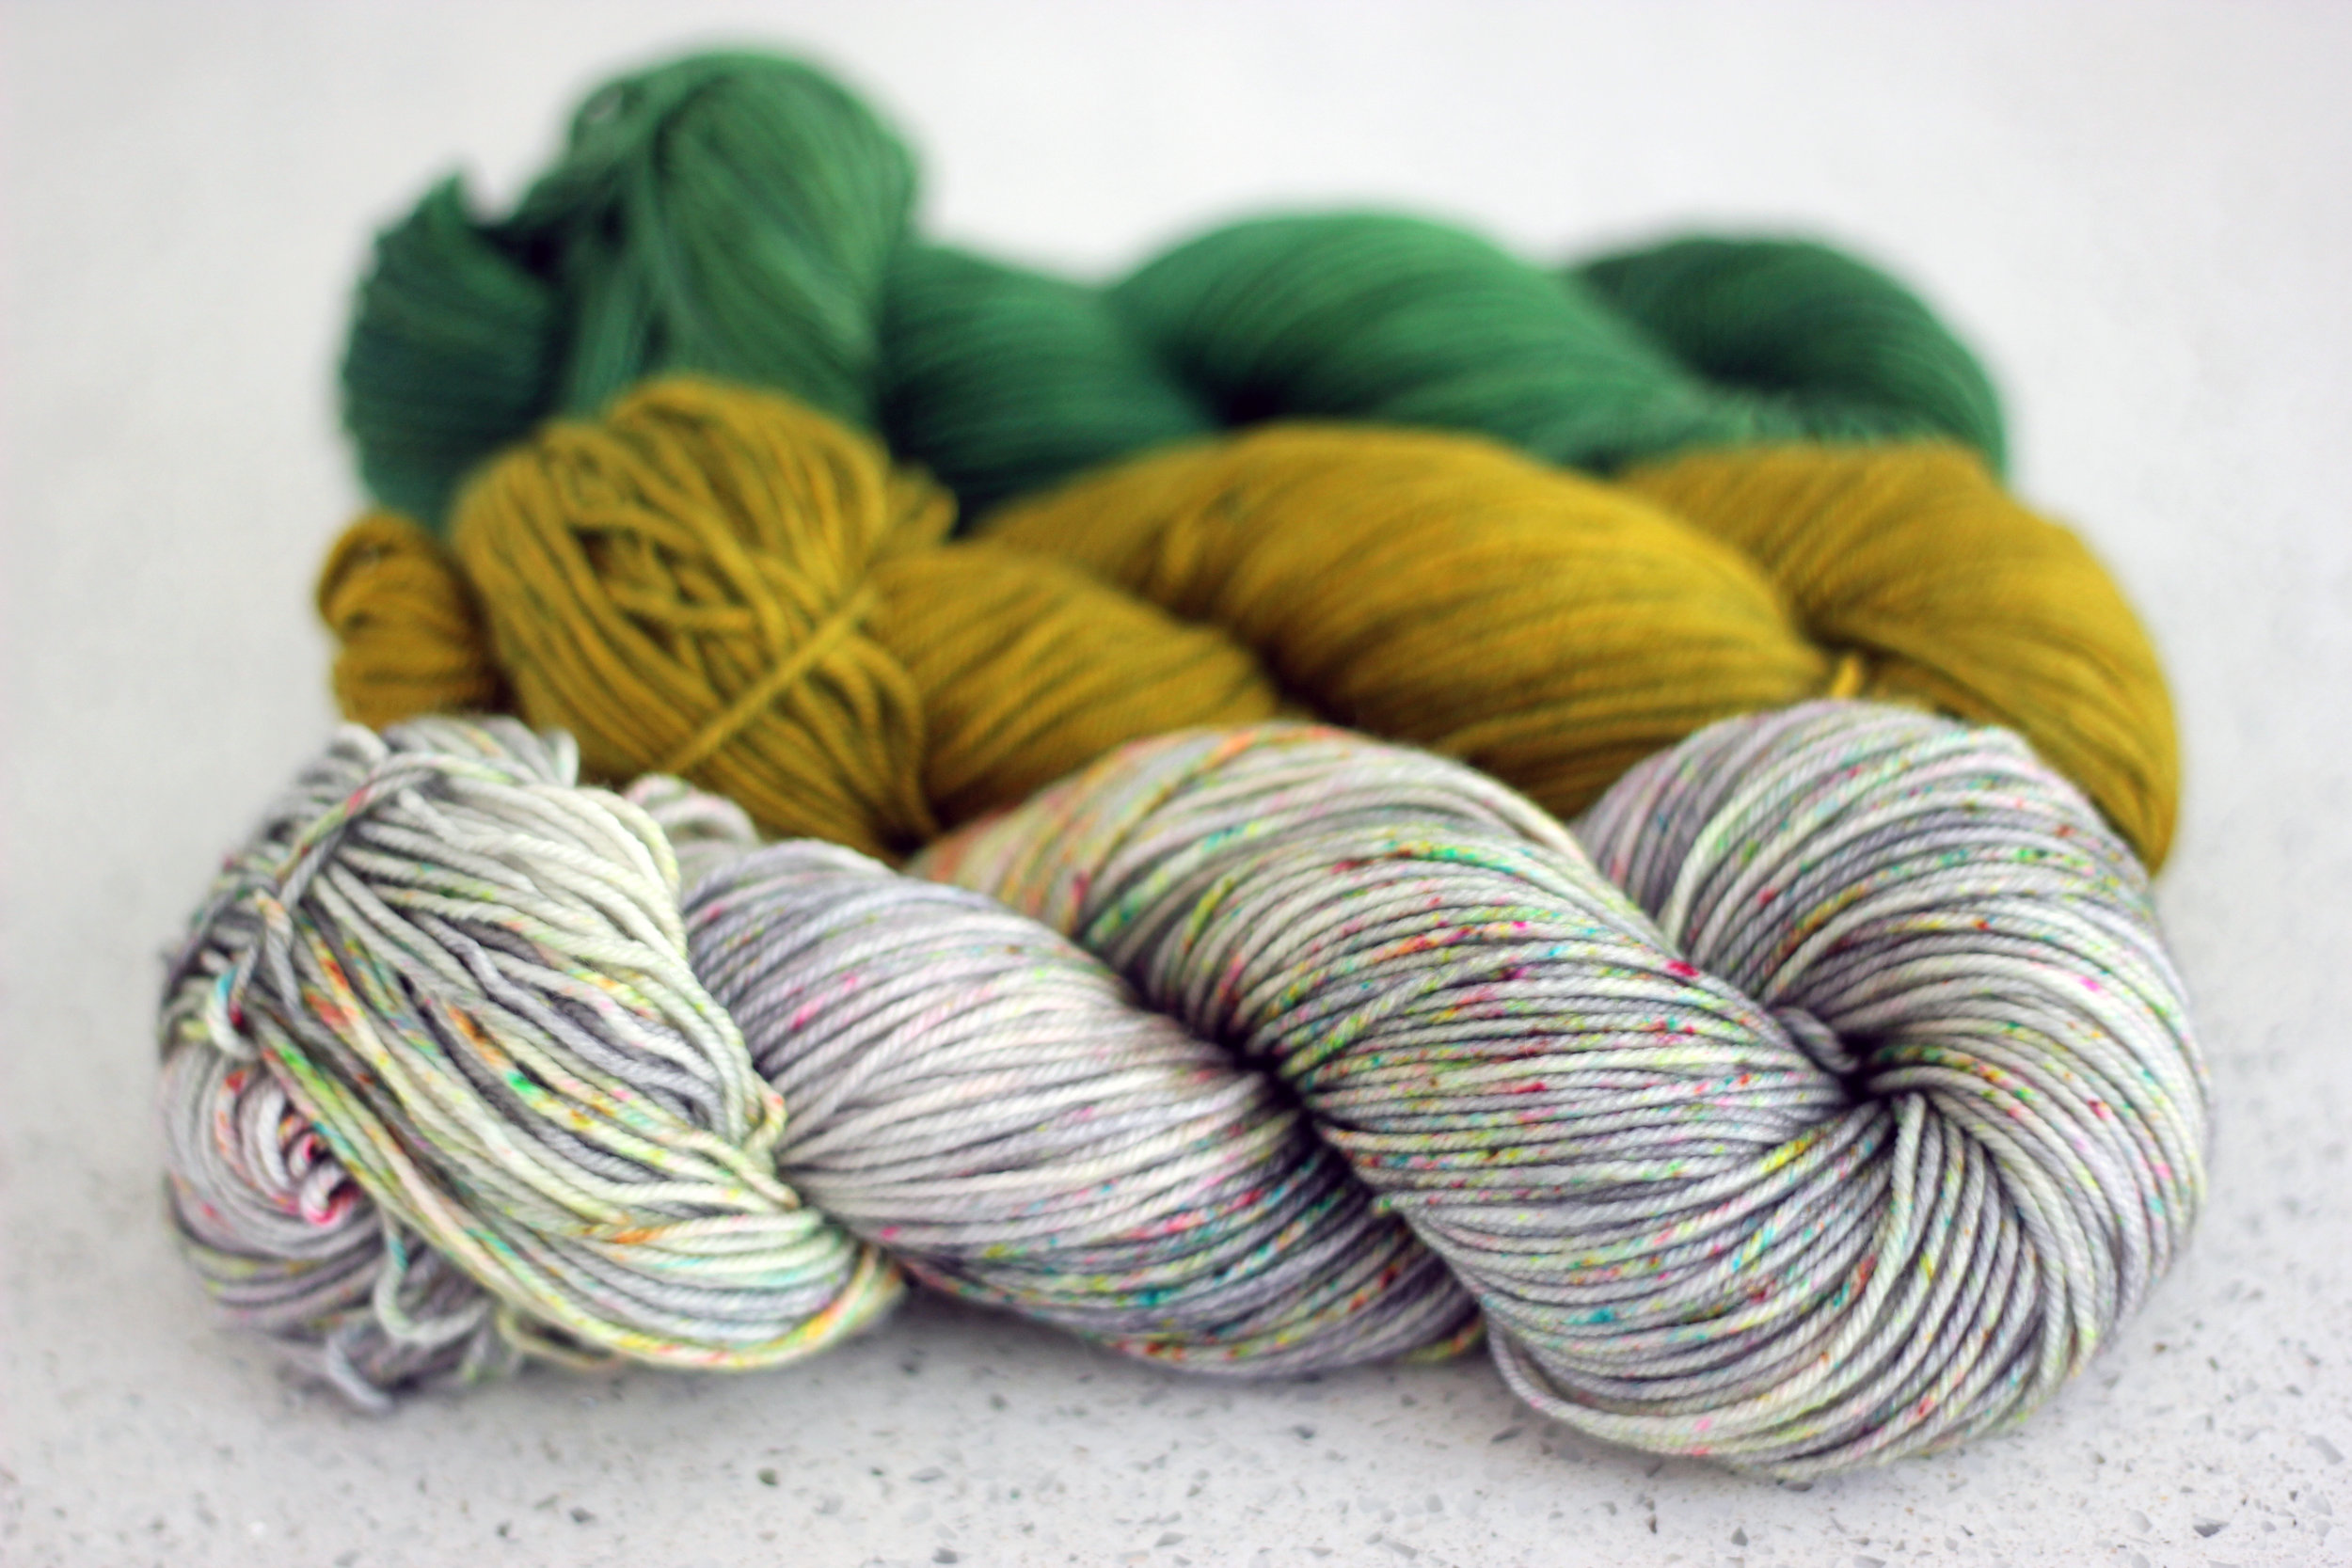 Bottom to top: OOAK speckled, OOAK weird-Chartreuse, Hunter (Club colourway from November 2016)